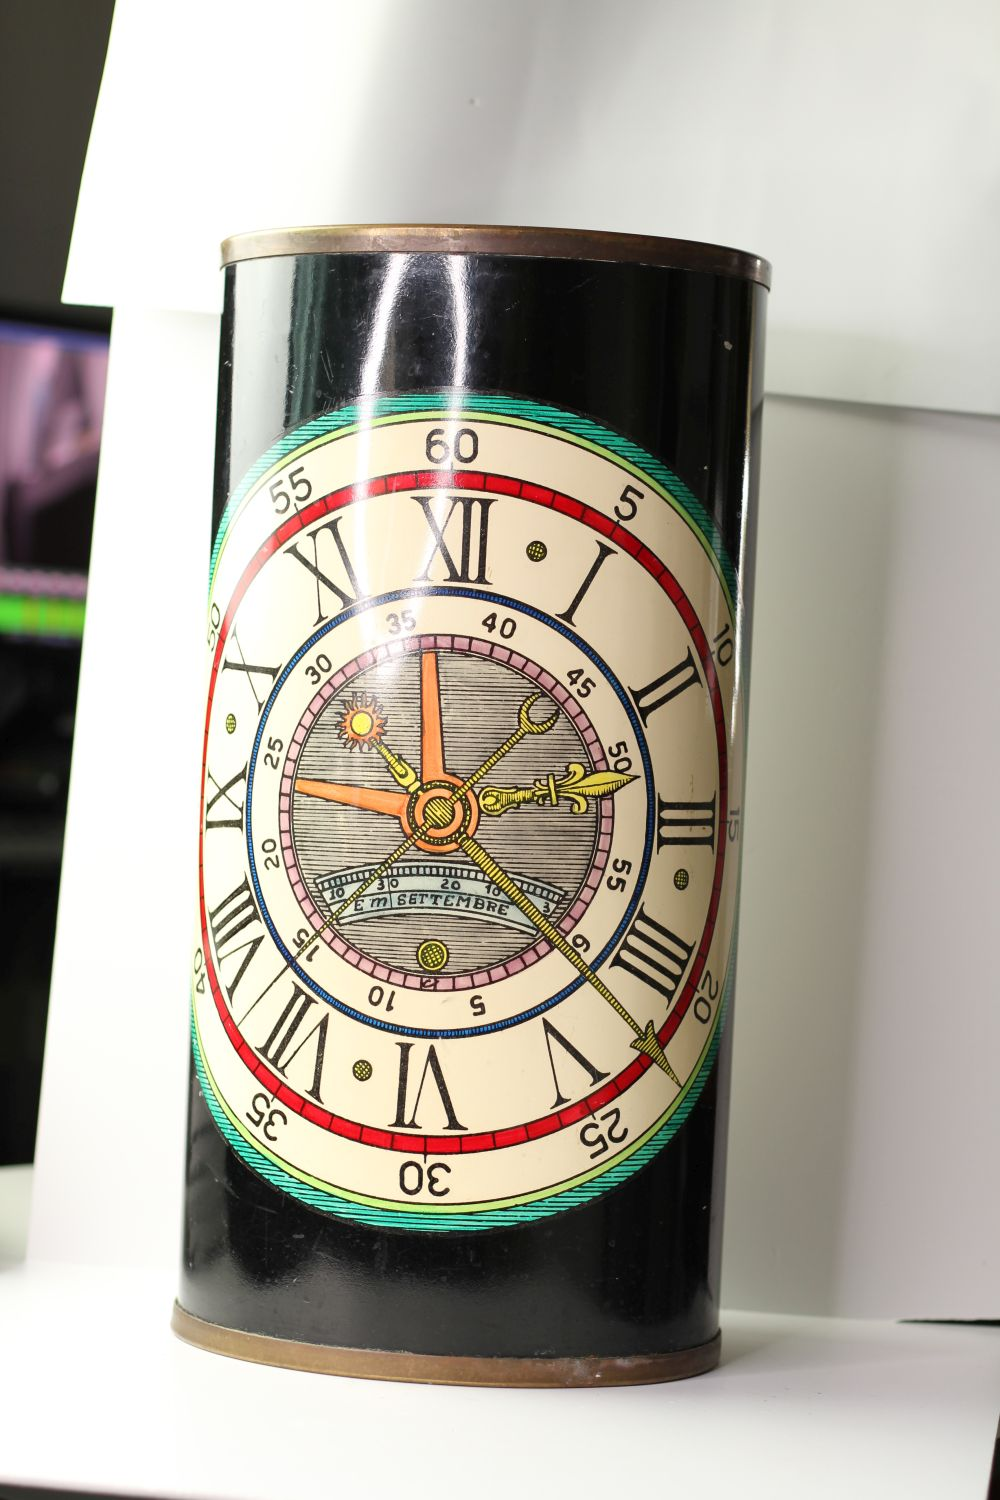 Vintage Fornasetti umbrella stand, lacquer finish with watch face design, sticker to base, - Image 3 of 4